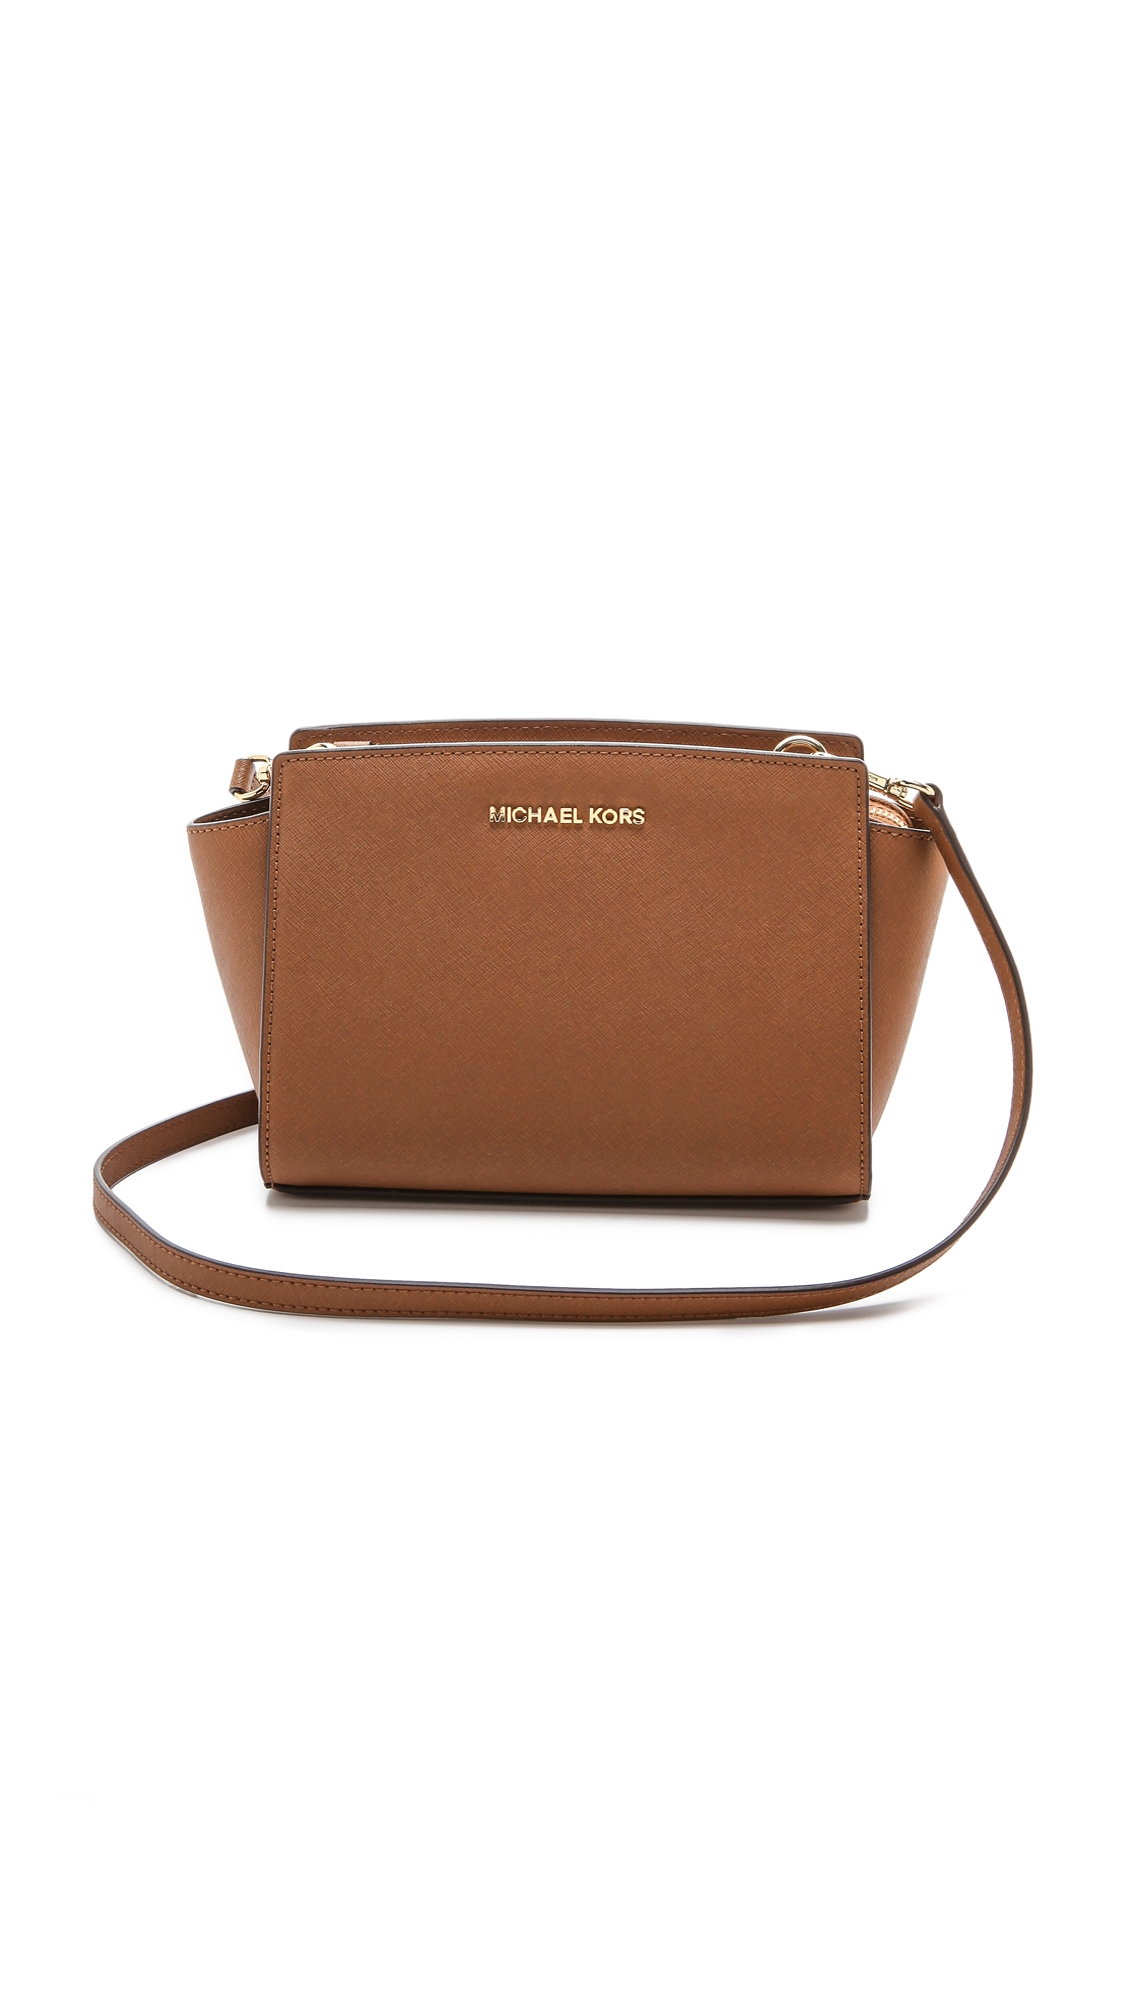 4e28198bf1ff Gallery. Previously sold at: Shopbop · Women's Leather Messenger Bags  Women's Michael By Michael Kors Selma